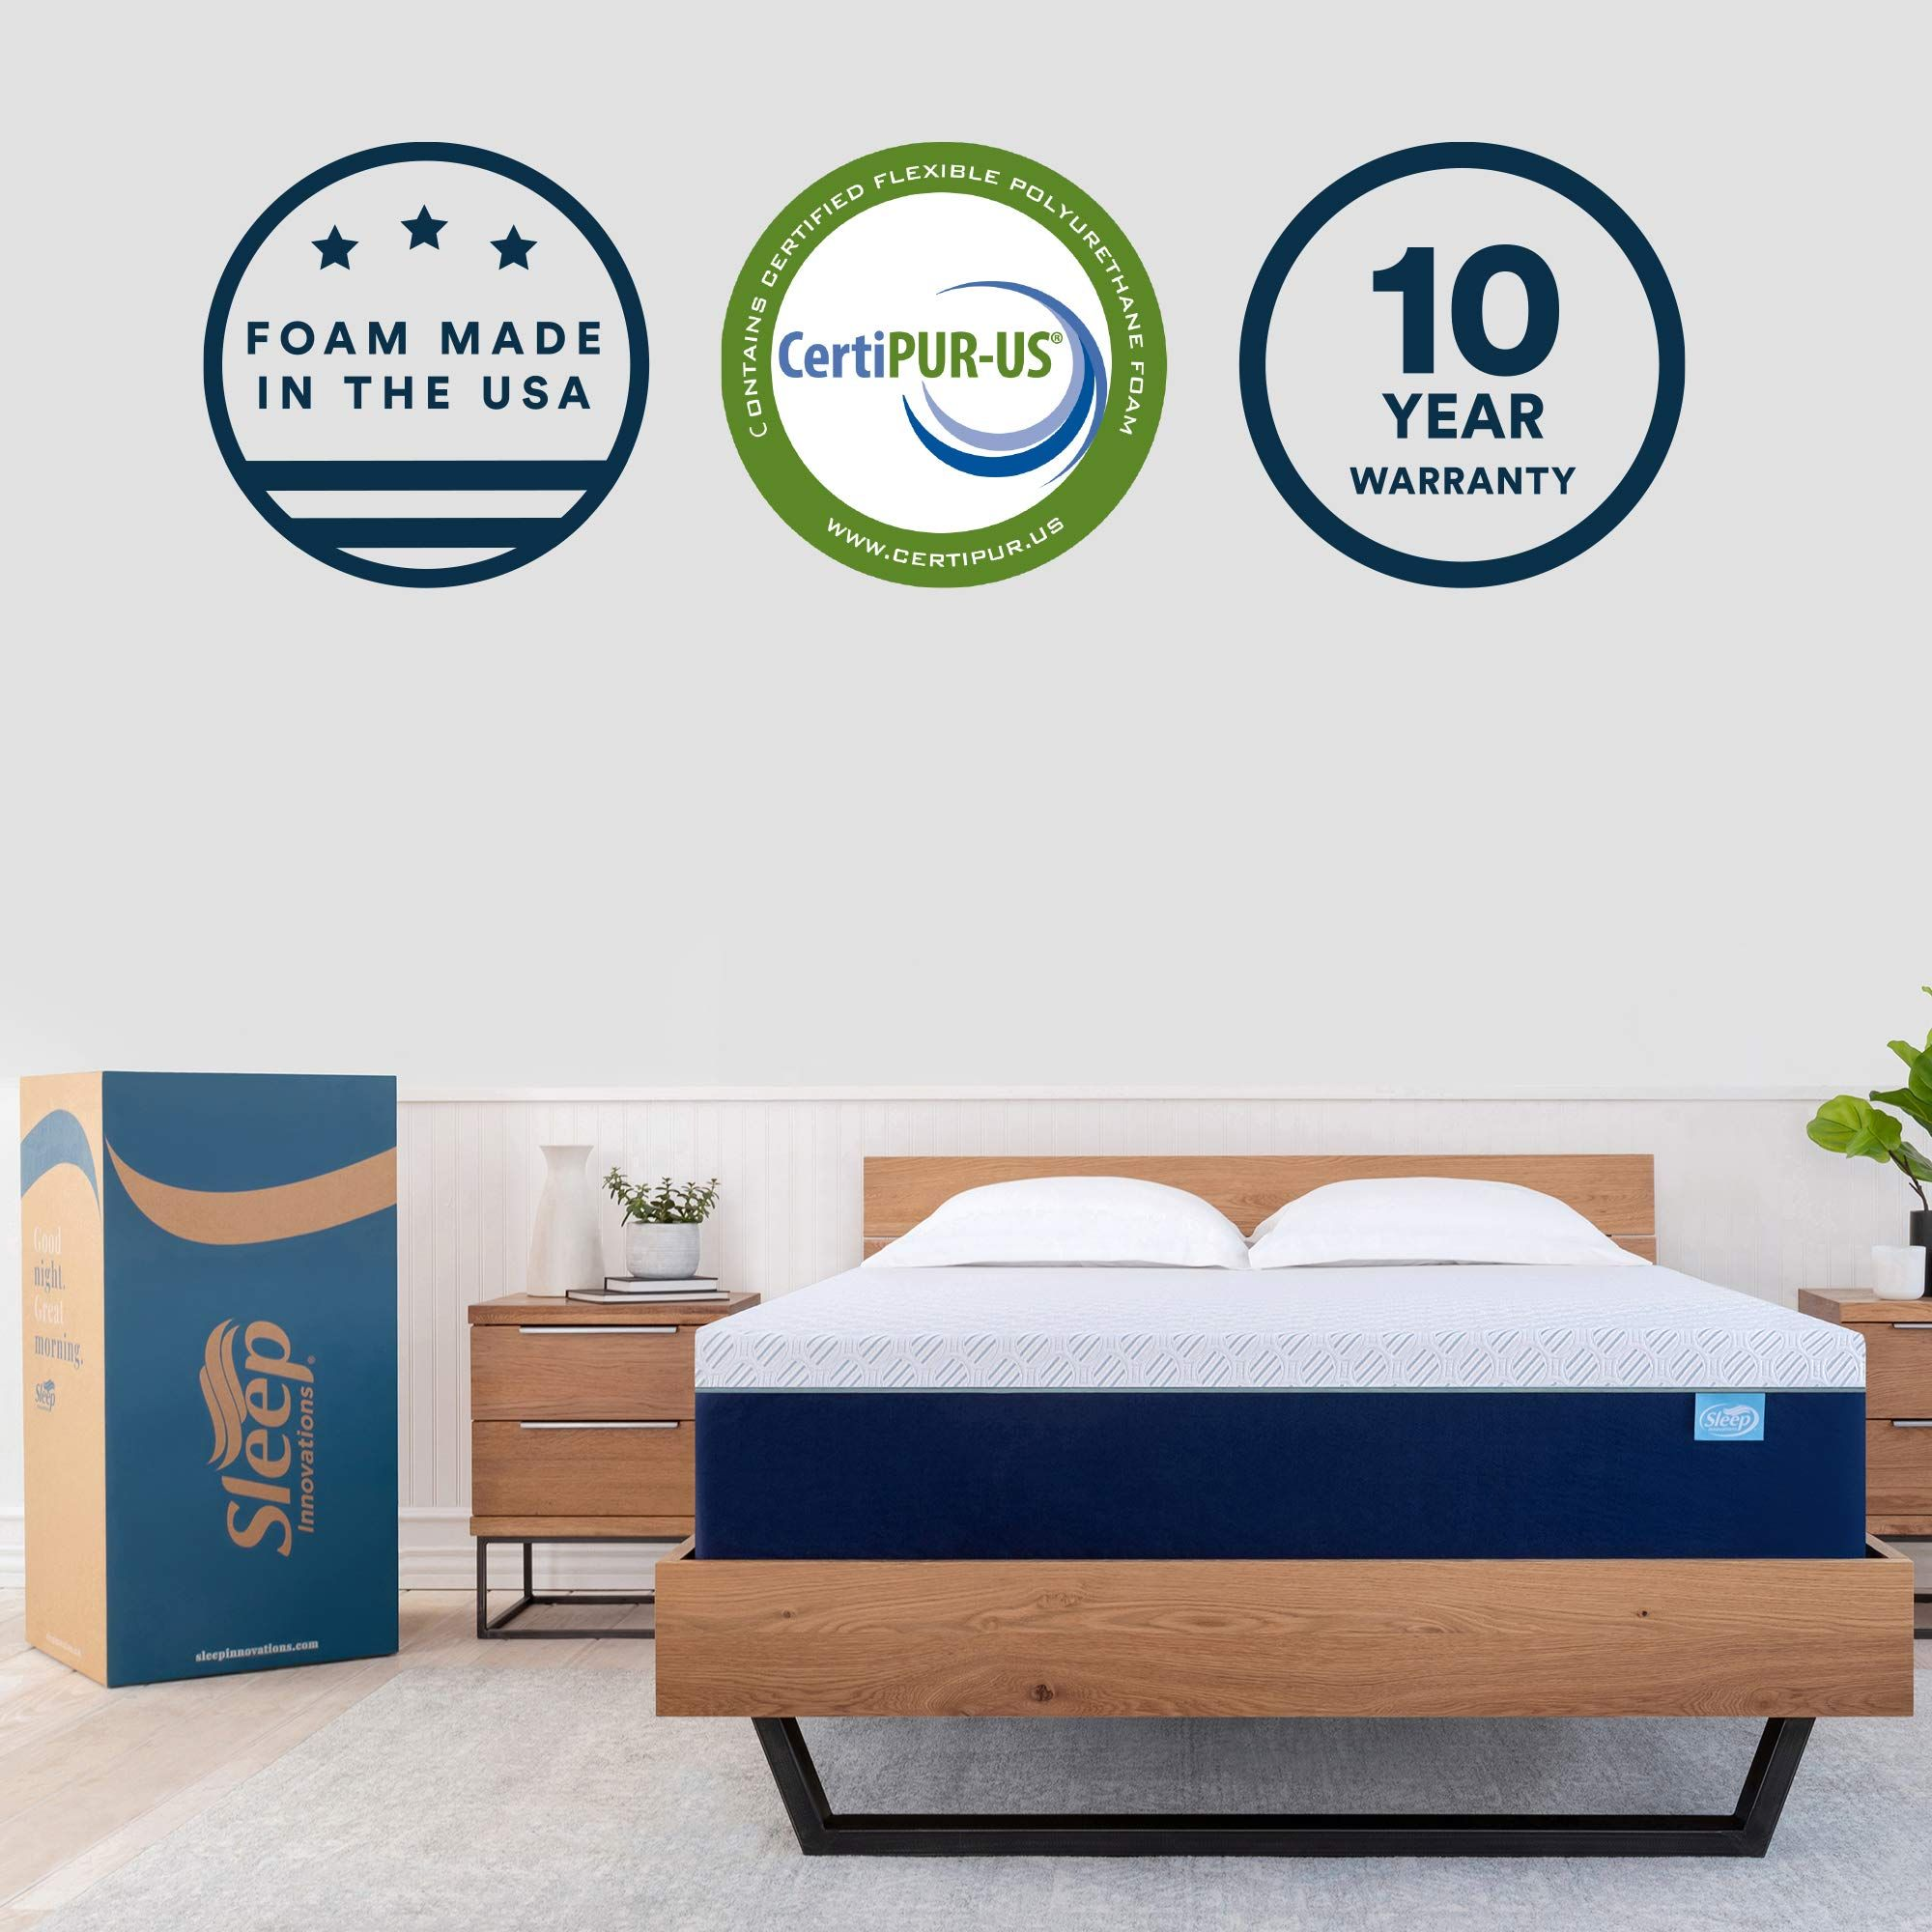 How Long Is A Tempurpedic Mattress Warranty